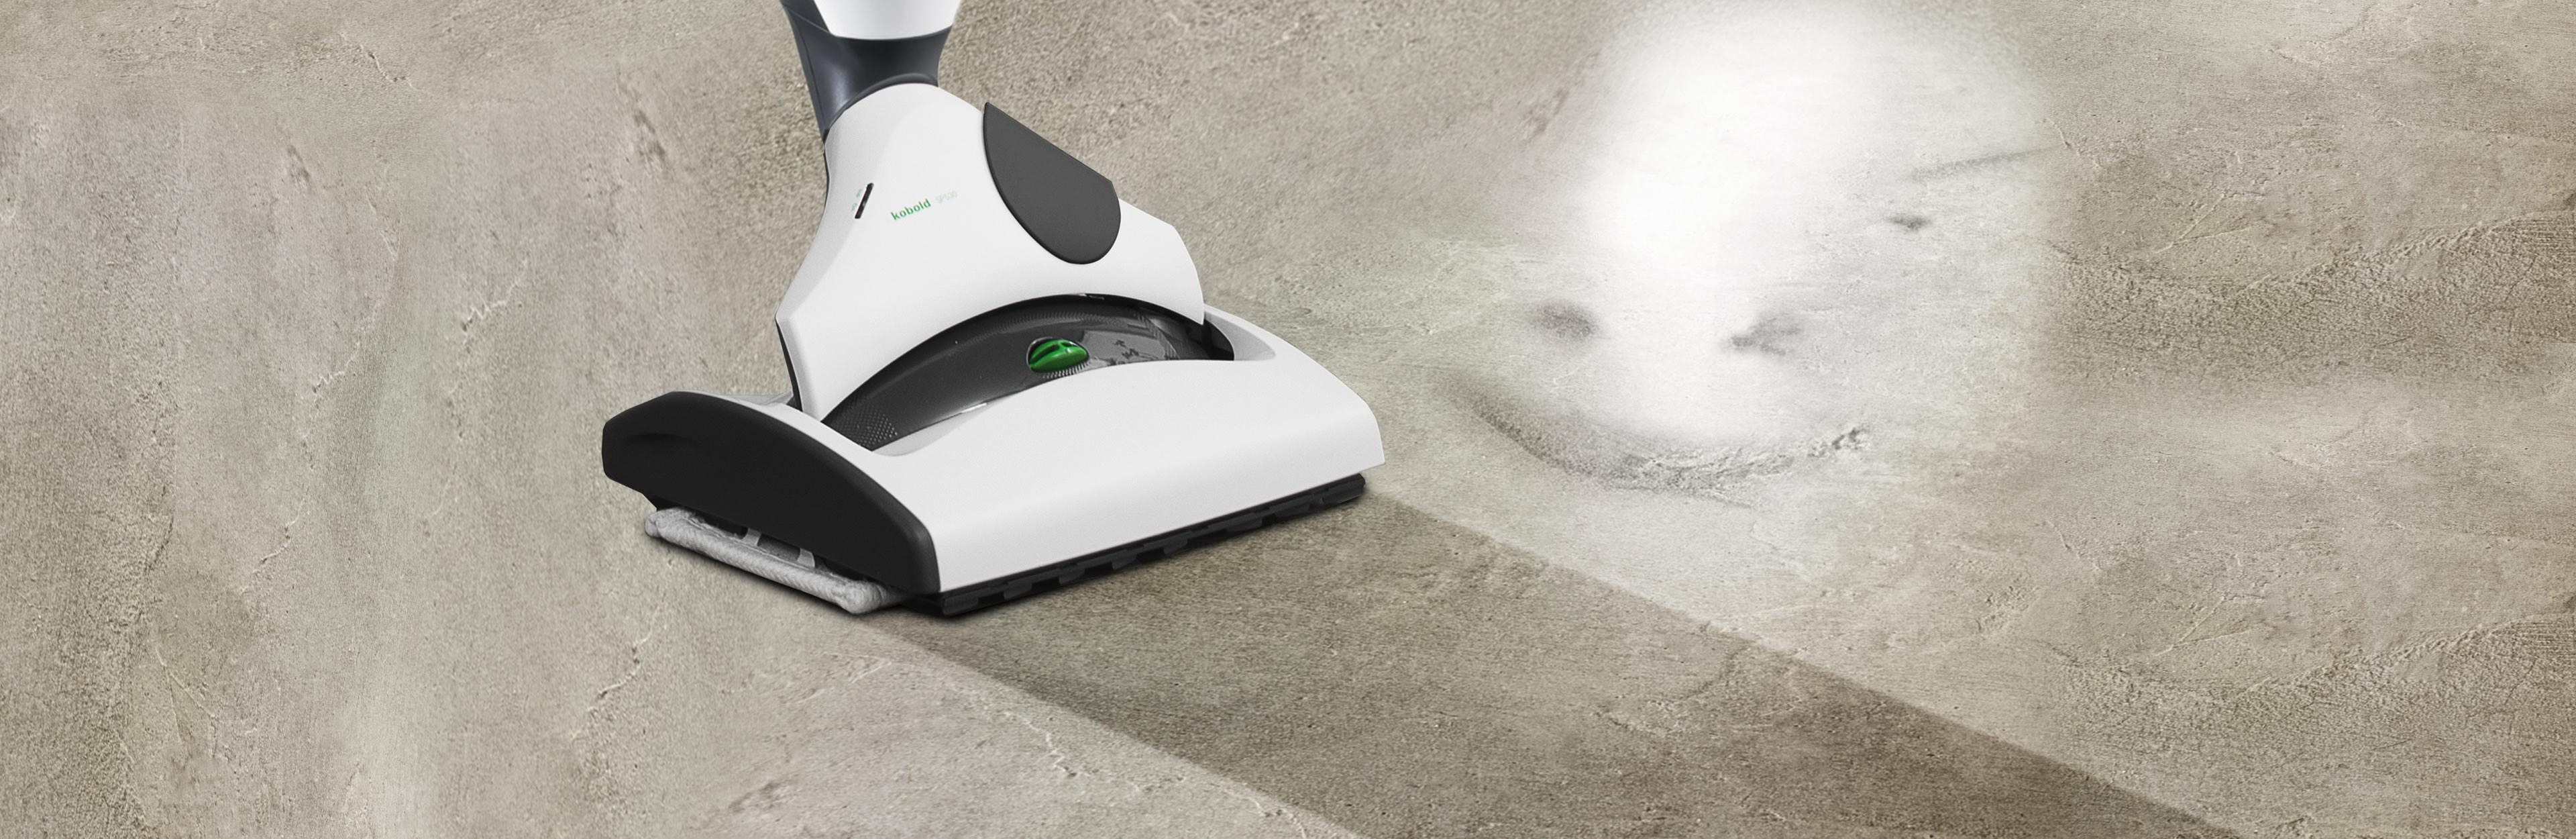 Kobold sp530 vorwerk kobold for Folletto lava e aspira